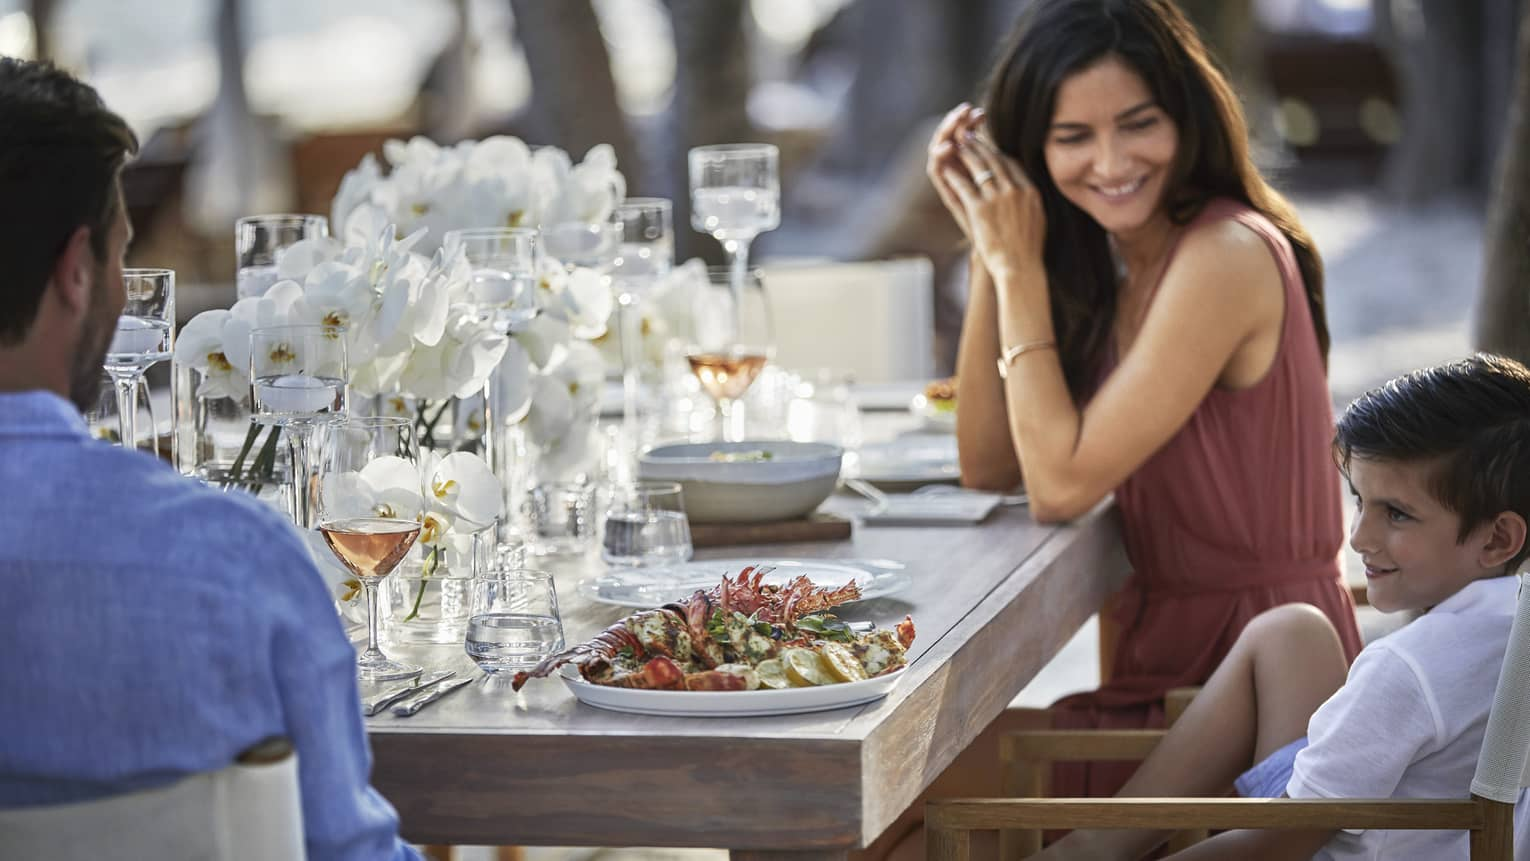 Smiling couple with young son at dining table with seafood, wine, white flowers